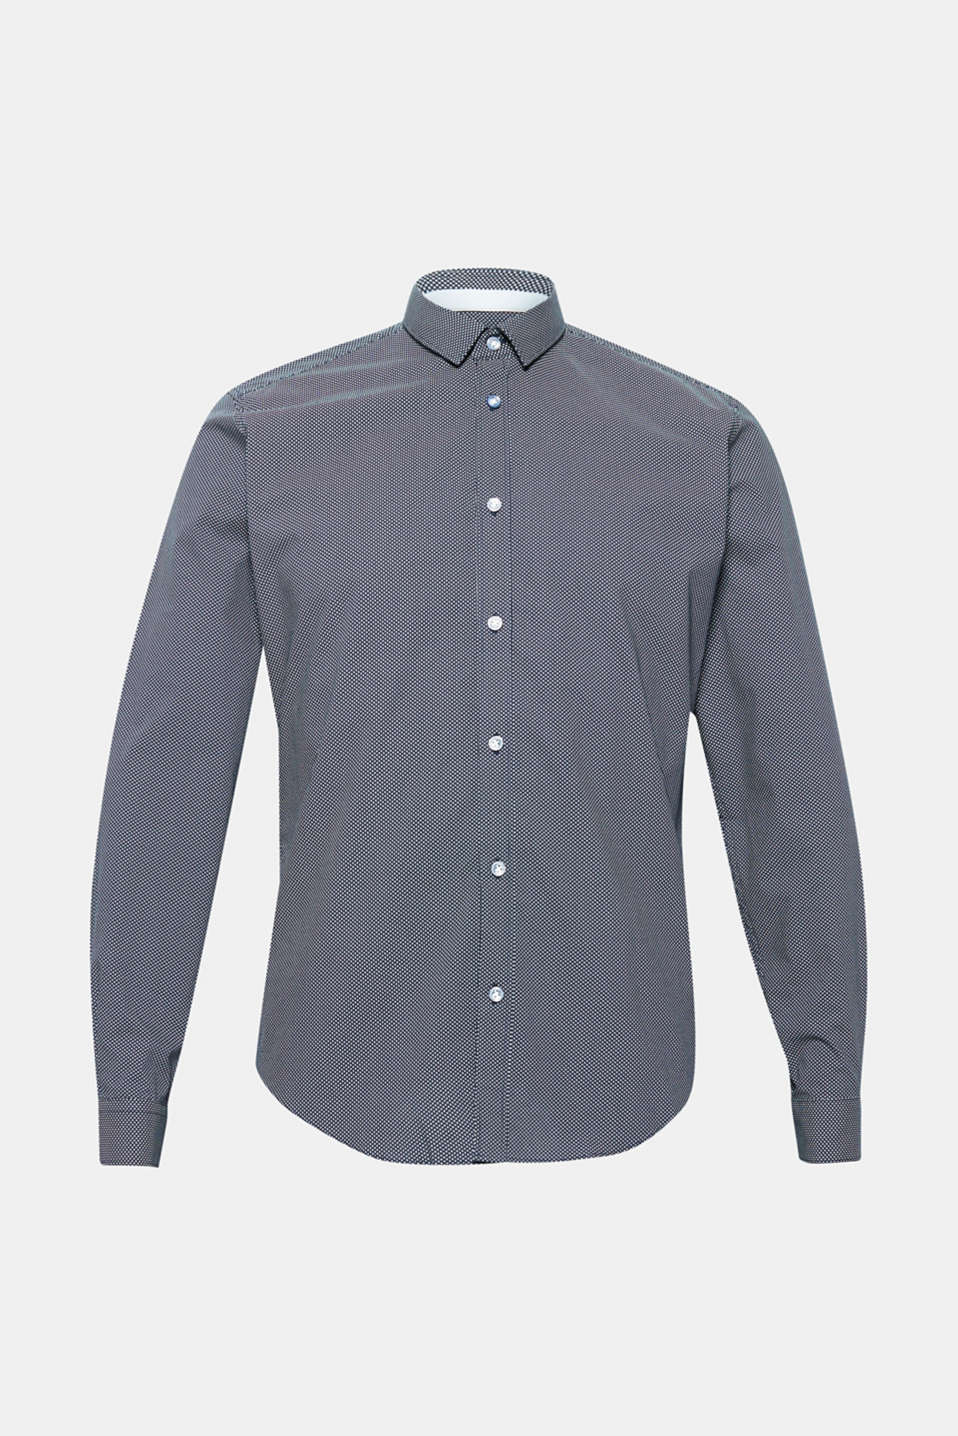 Patterned shirt in 100% cotton, NAVY, detail image number 7